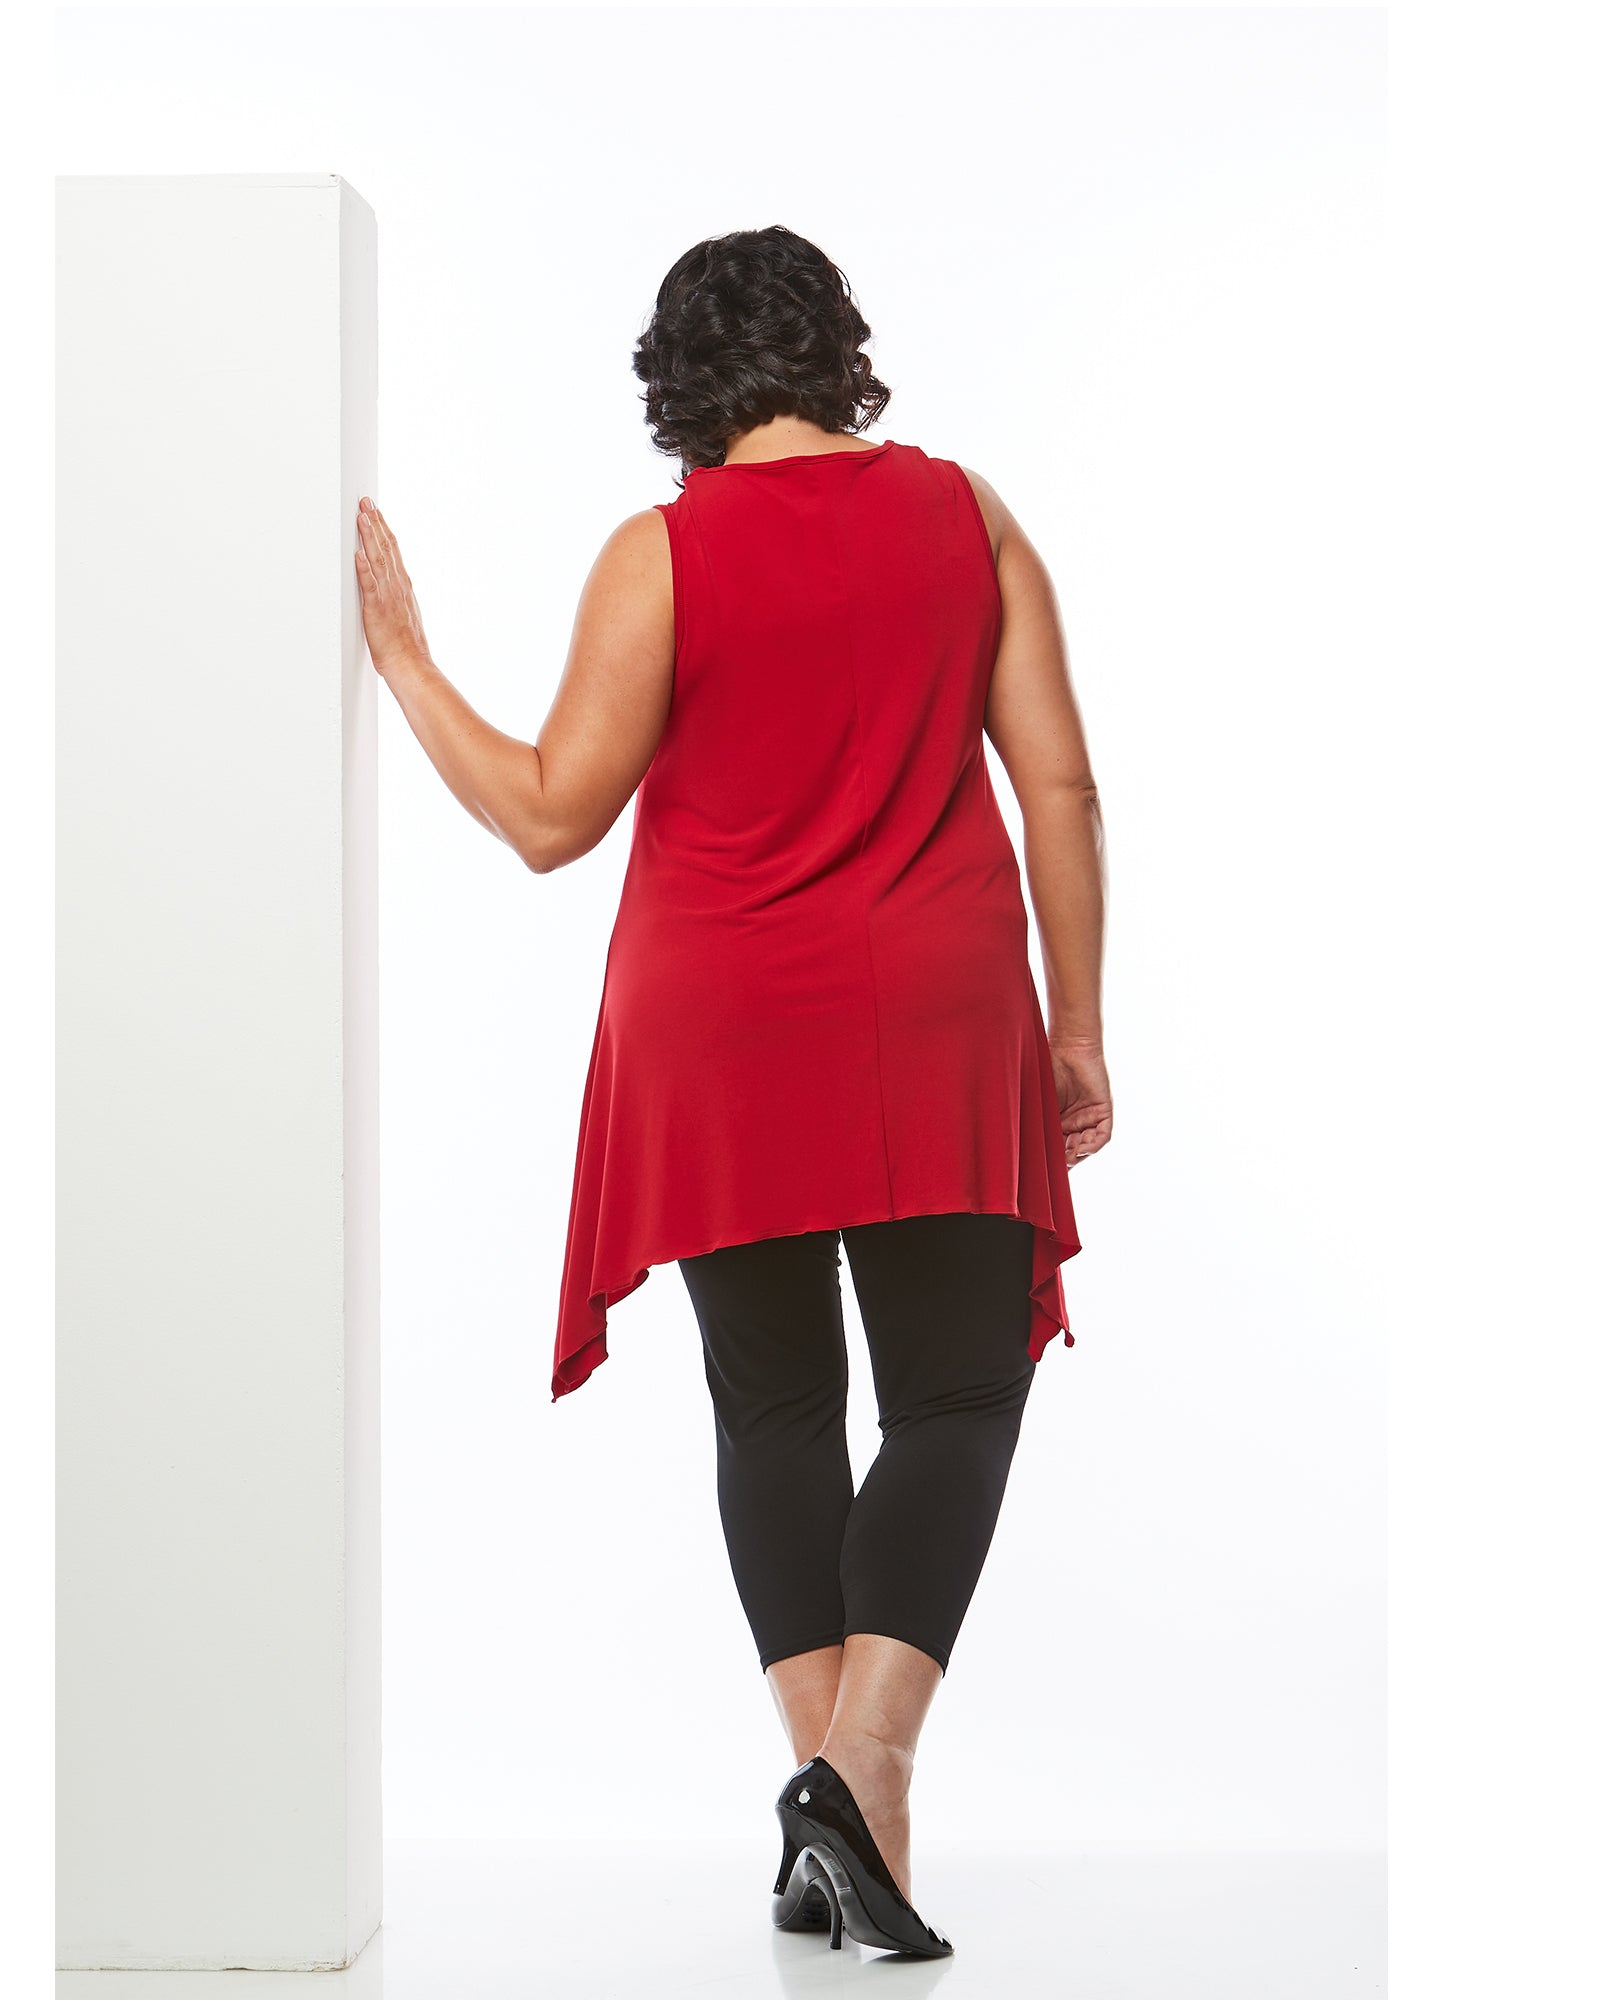 Plus size tunic top red, Room To Move Tunic